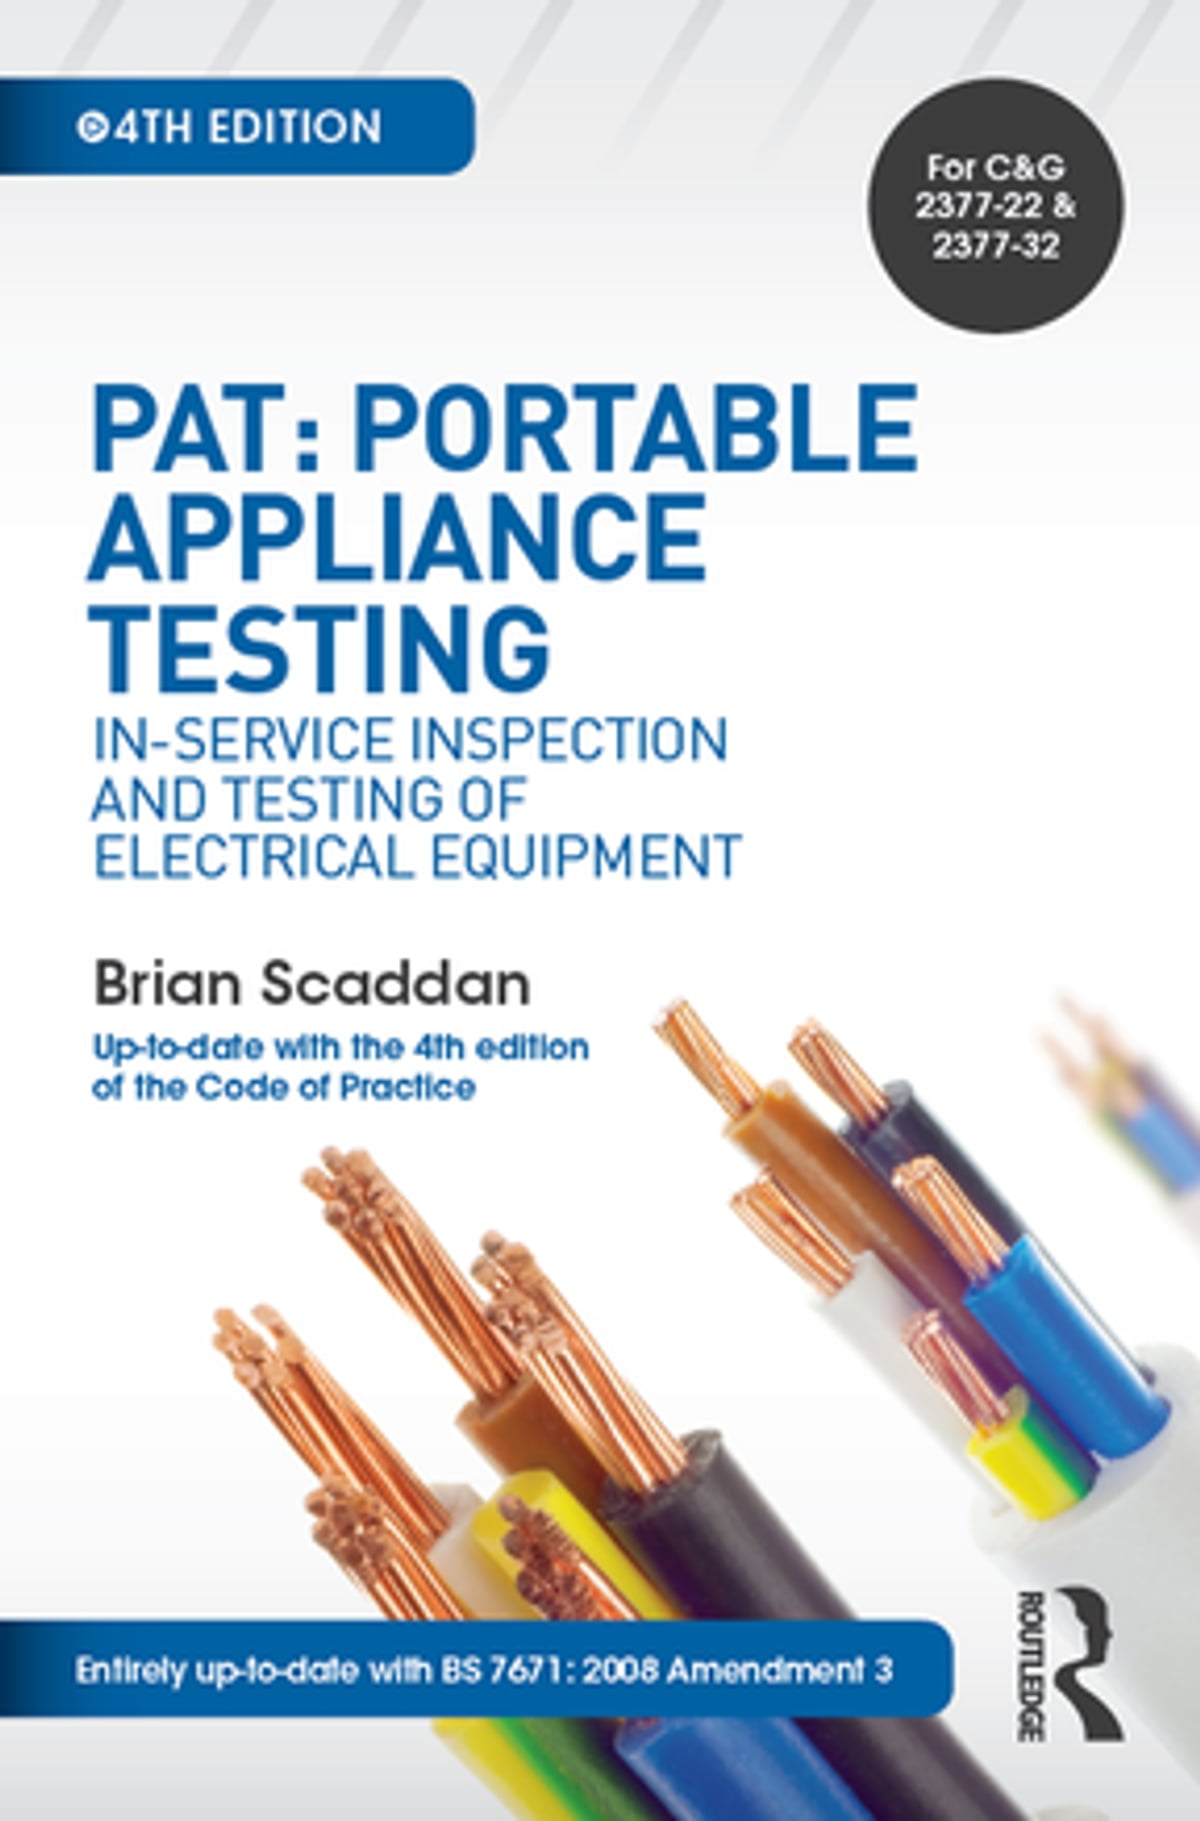 Pat Portable Appliance Testing 4th Ed Ebook By Brian Scaddan 17th Edition Wiring Regulations Book Free Download 9781317534785 Rakuten Kobo